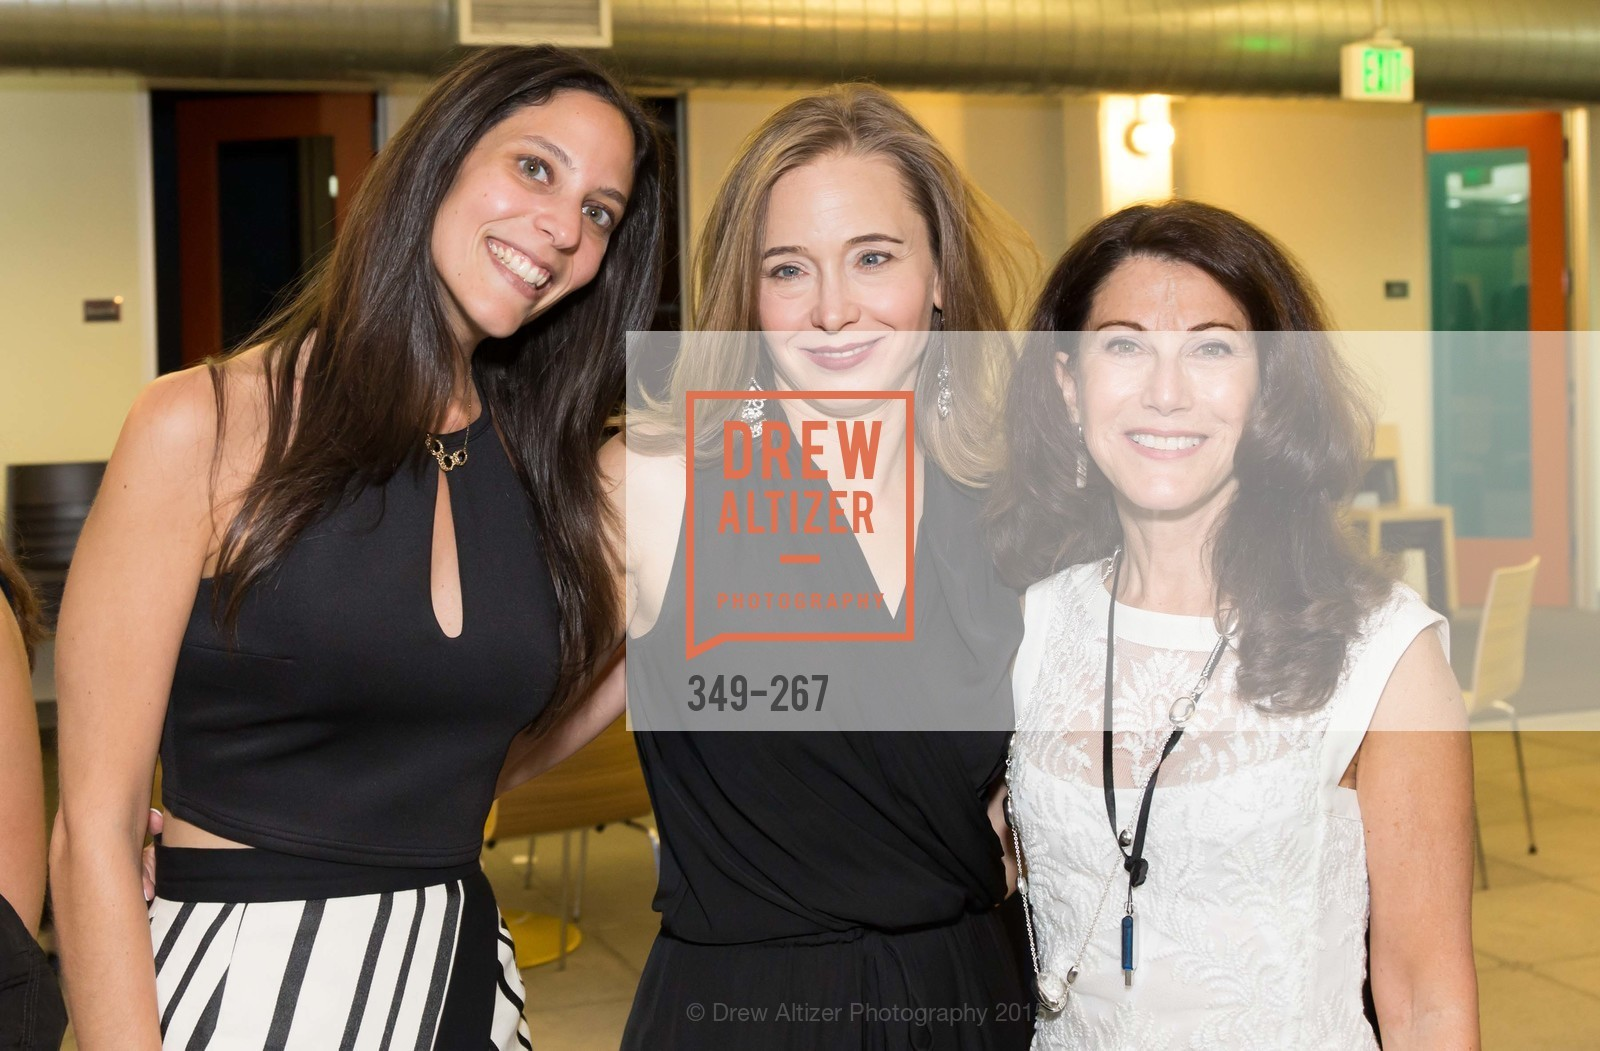 Rachel Wolfson, Mylea Charvat, Adrienne Mally, Pre-Party for Cirque du Soiree 2015, If(we.co) Headquarters. 848 Battery St, August 27th, 2015,Drew Altizer, Drew Altizer Photography, full-service agency, private events, San Francisco photographer, photographer california